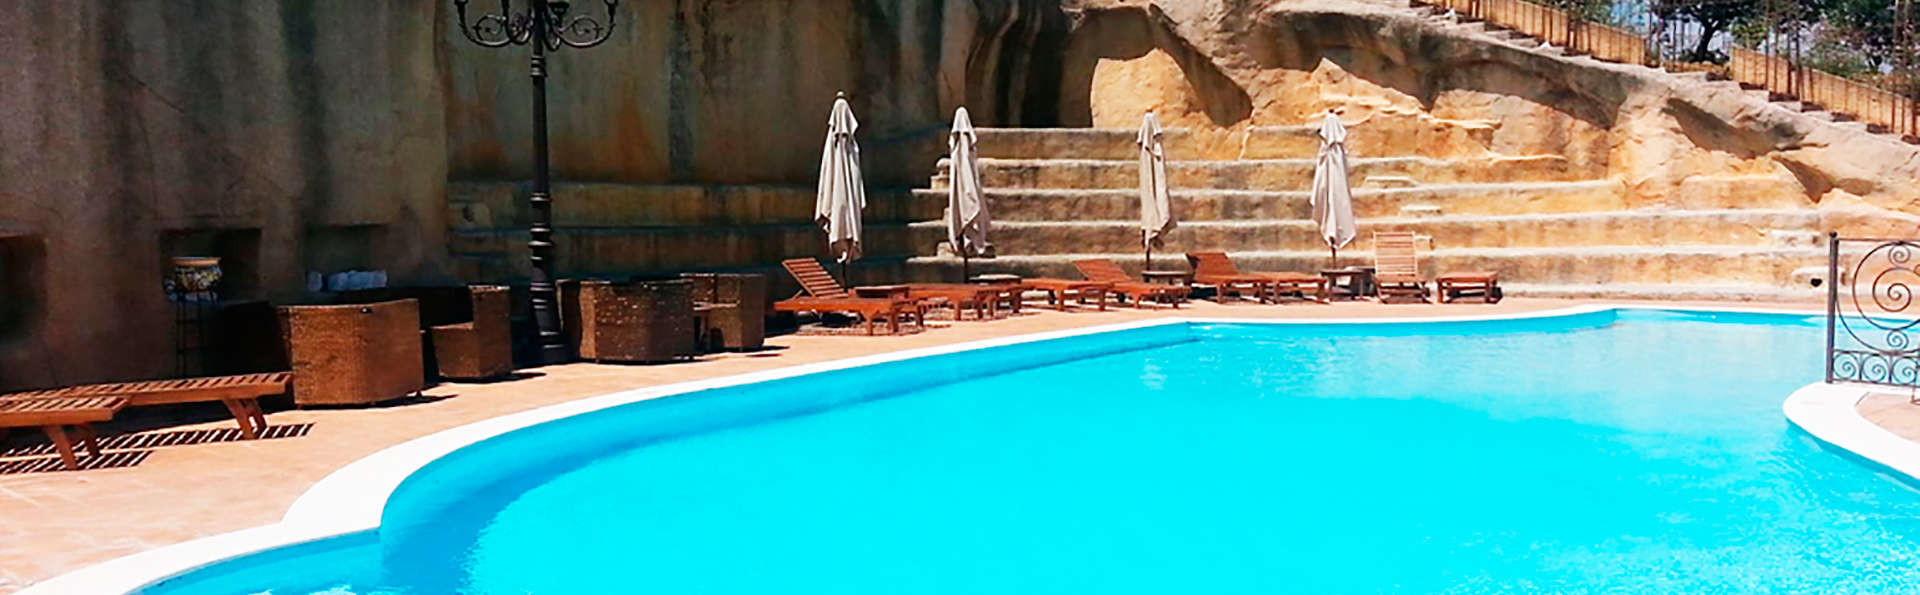 Grand Hotel La Batia - edit_piscina1_big.jpg